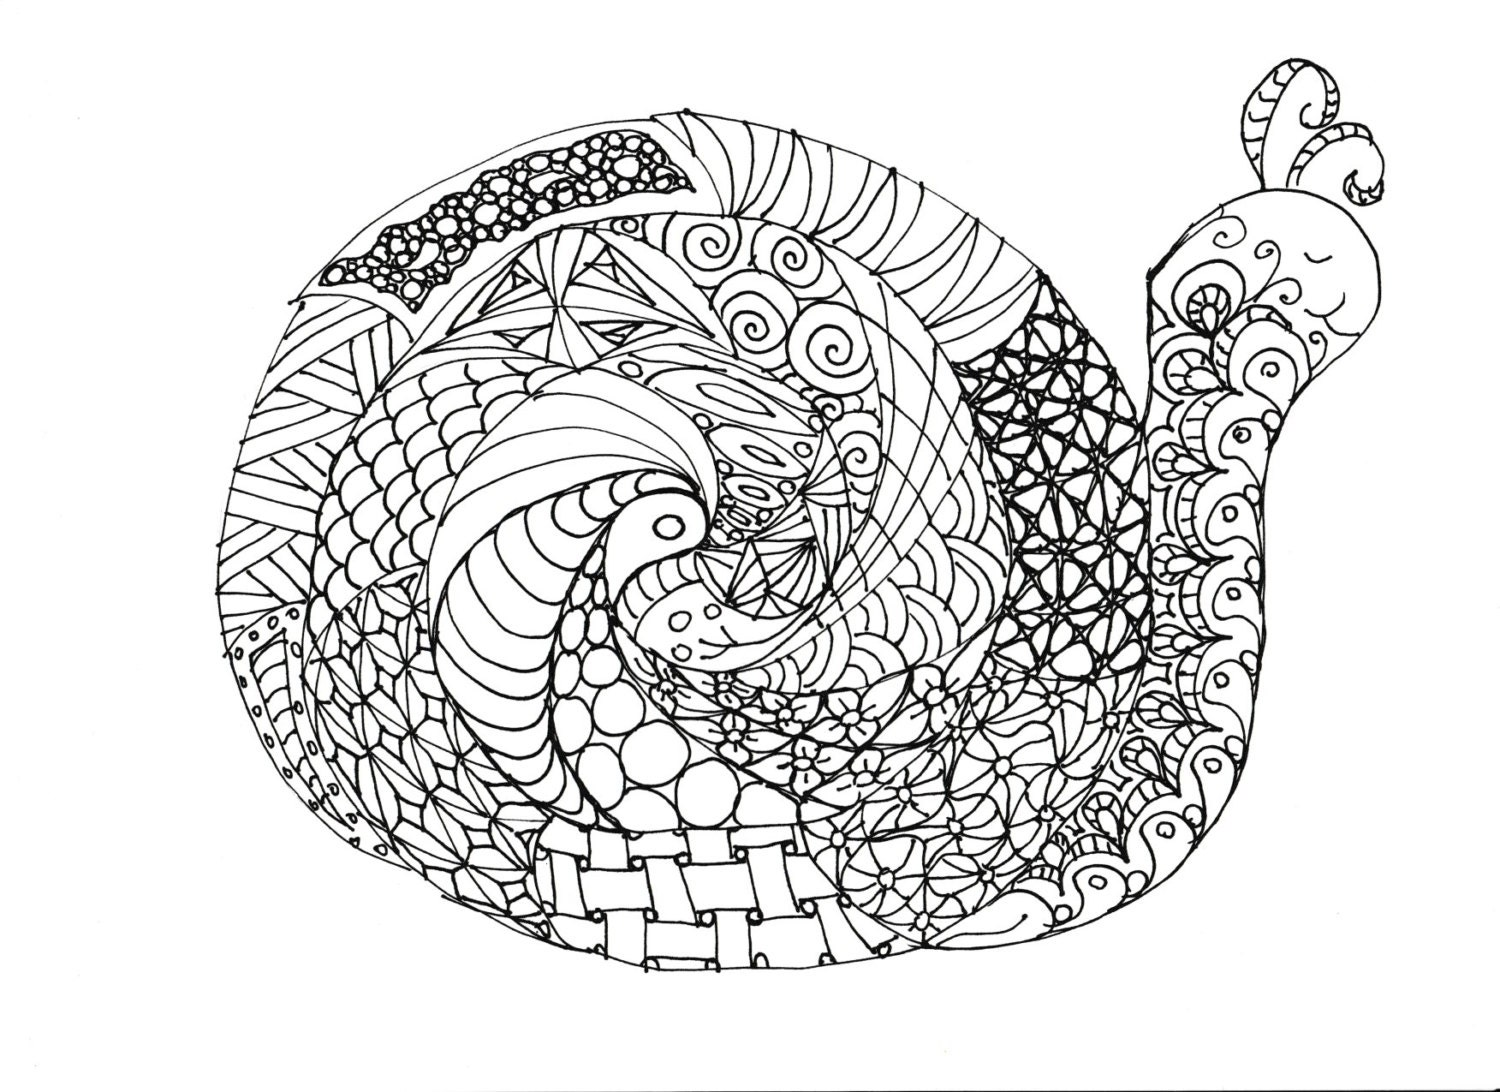 Coloring Pages Printable Adult For Kids Simple Designs To Color 11 Print